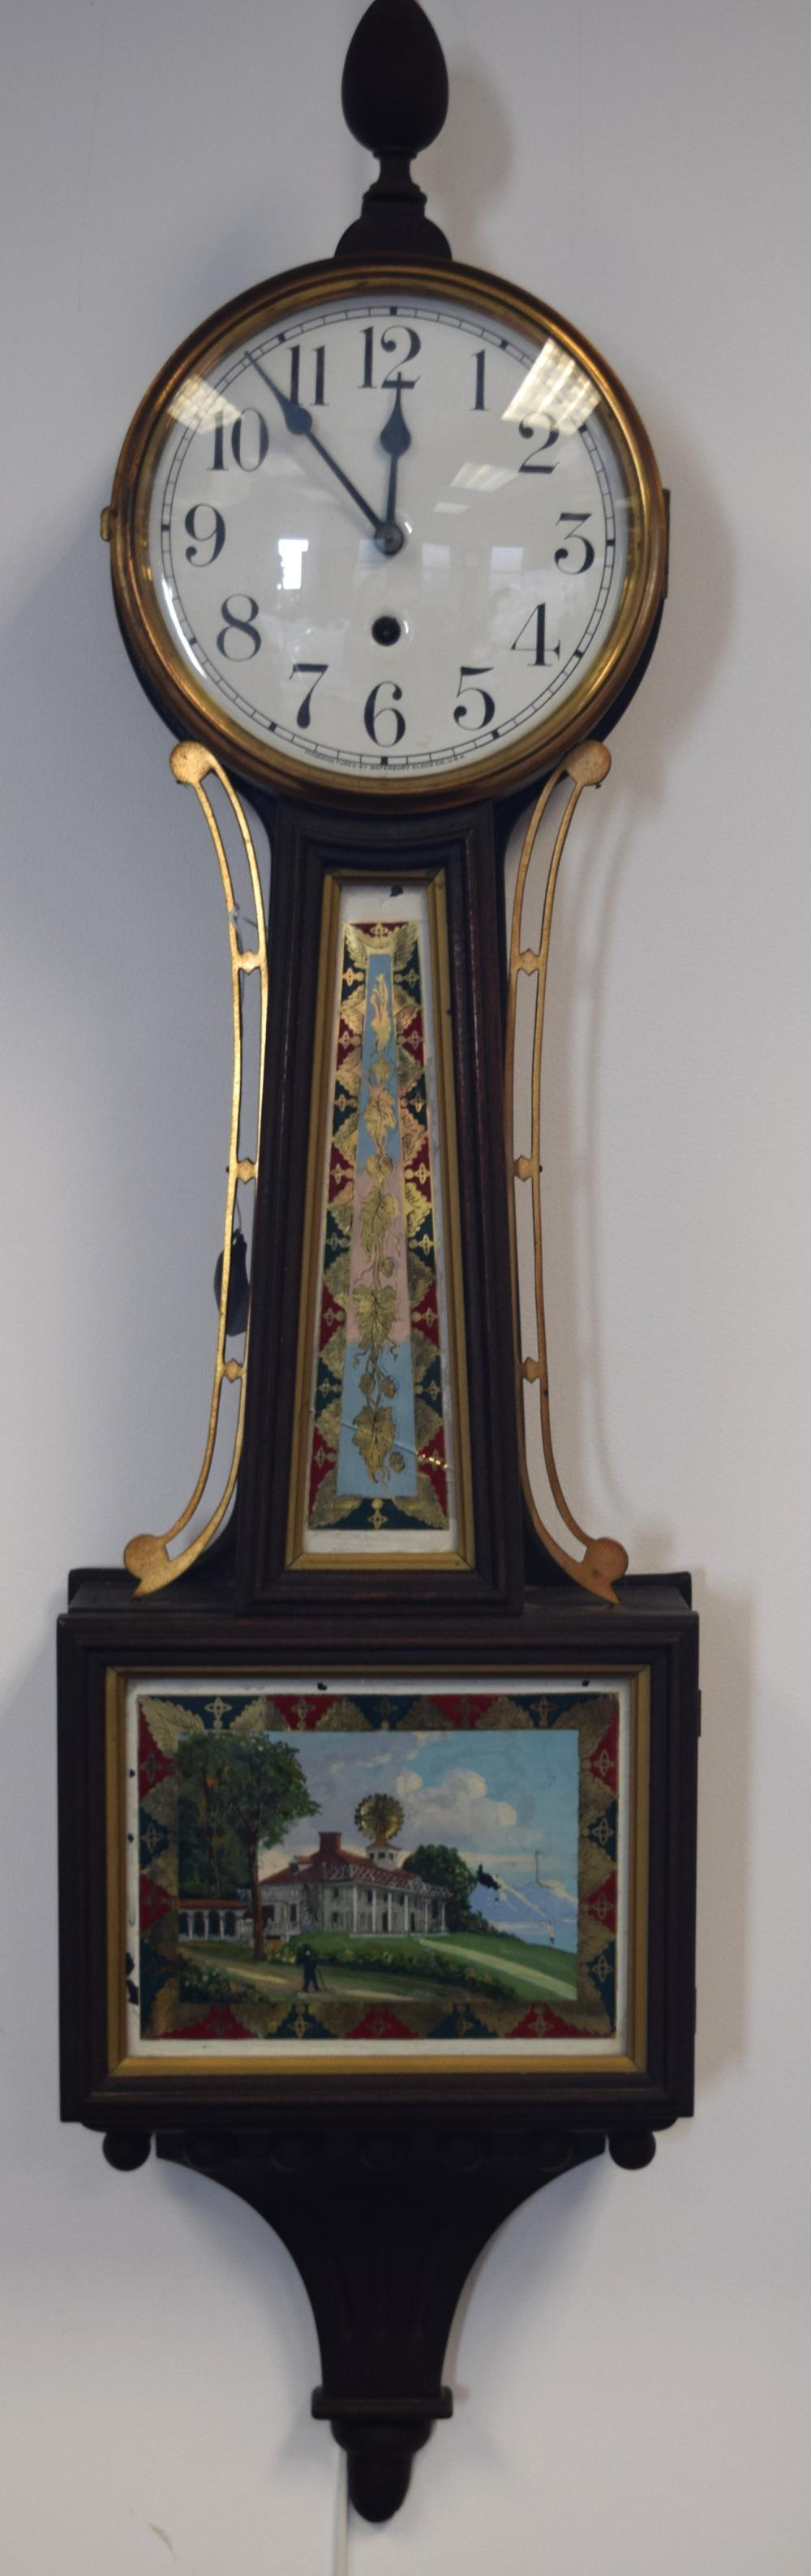 WATERBURY WILLARD PATENT MOUNT WASHINGTON HANGING BANJO CLOCK: